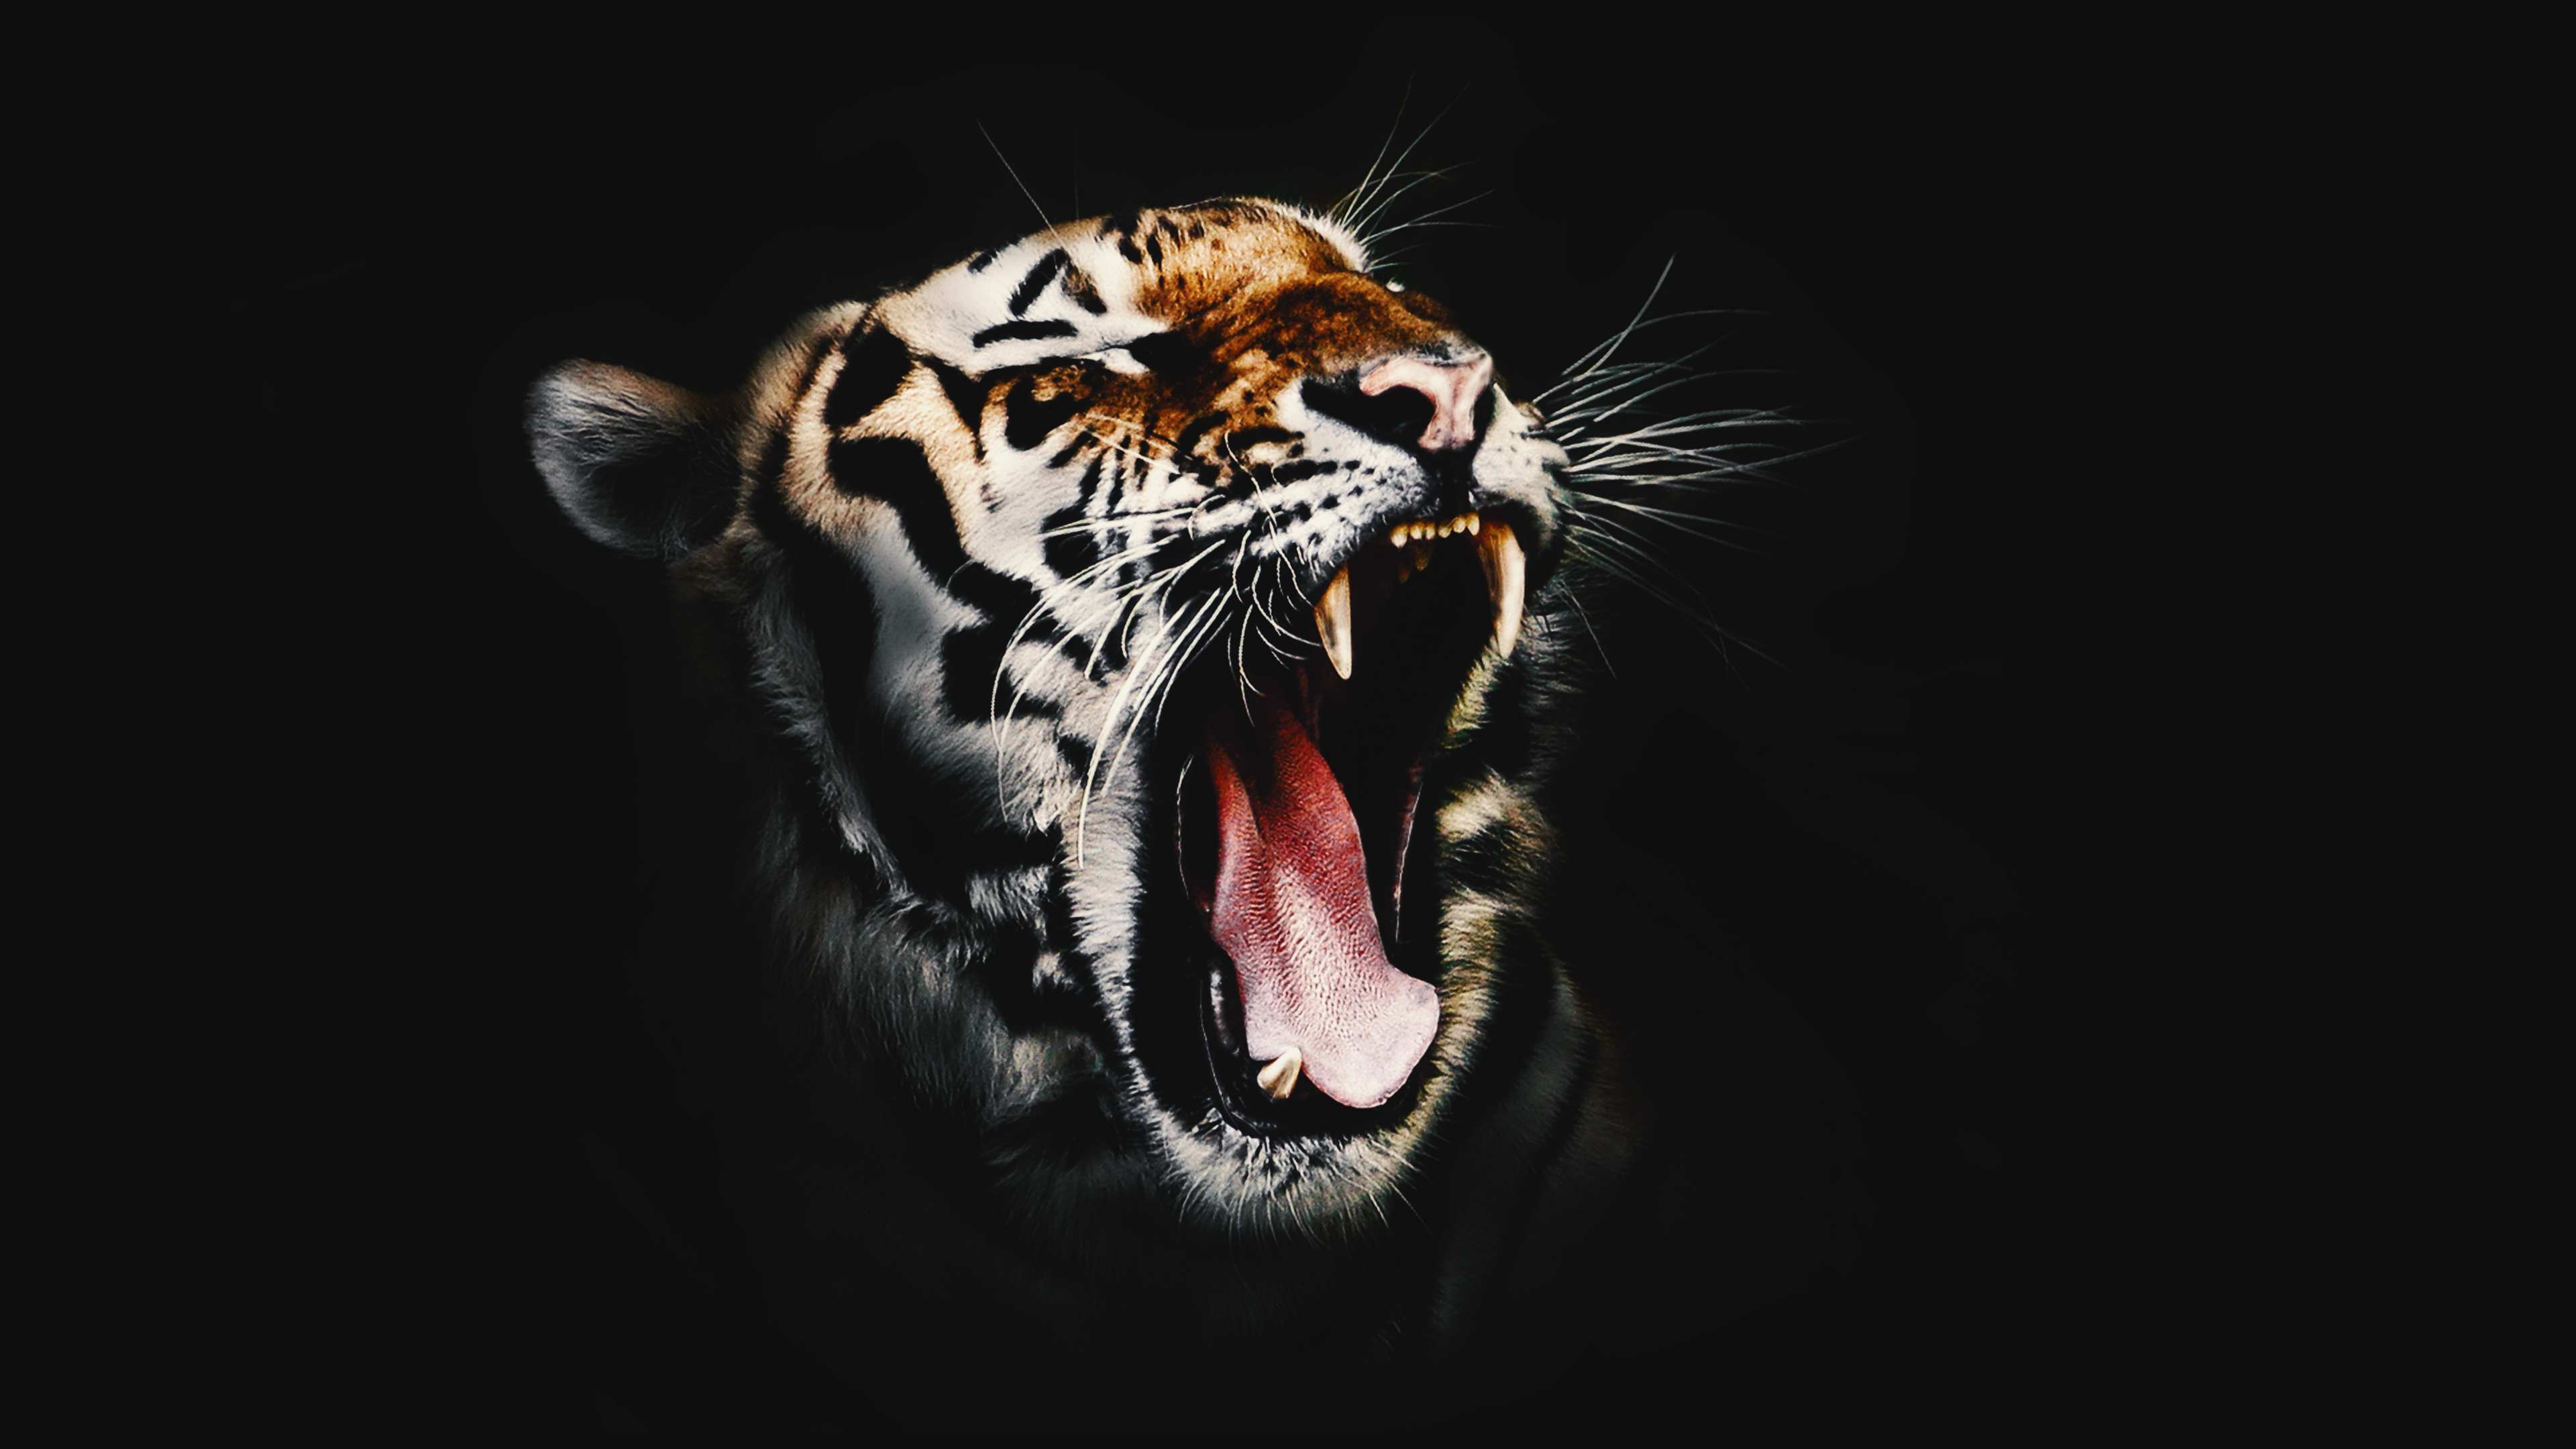 Download Free Hd Wicked Tiger Desktop Wallpaper In 4k 0287